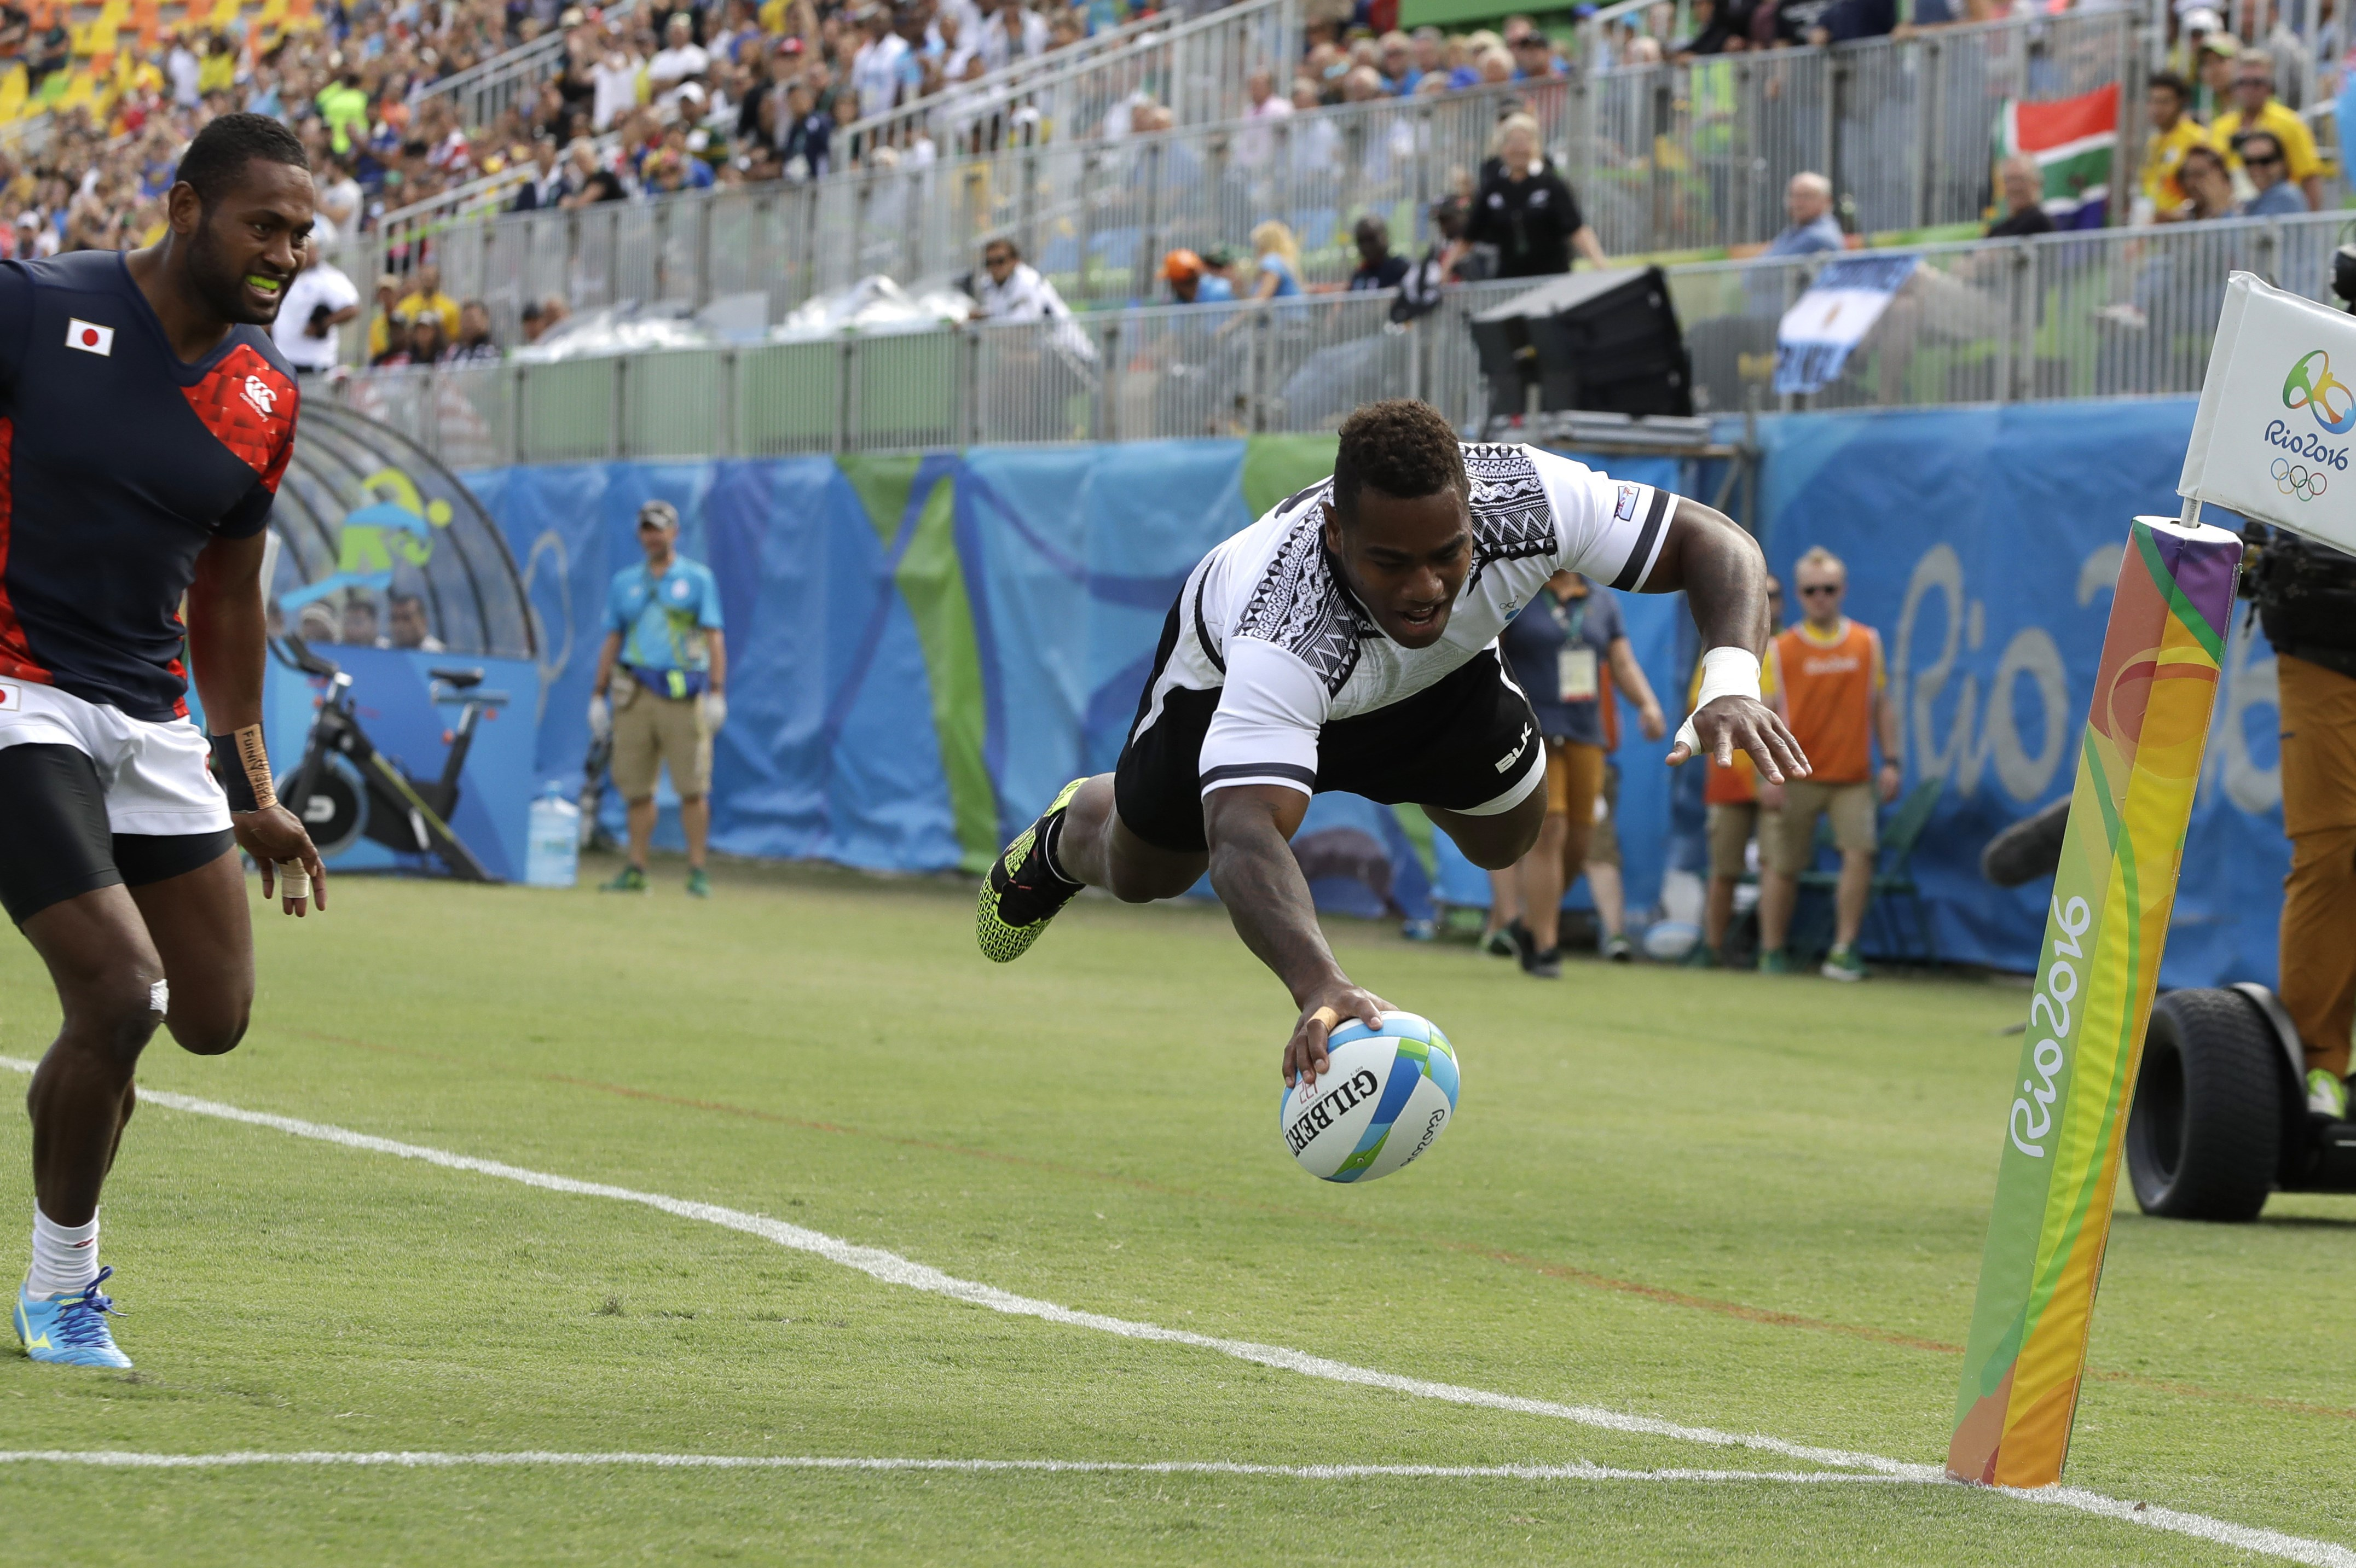 Fiji's Josua Tuisova, right, scores a try as Japan's Kameli Soejima, watches during the semi final of the men's rugby sevens match at the Summer Olympics in Rio de Janeiro, Brazil, Thursday, Aug. 11, 2016. (AP Photo/Themba Hadebe)